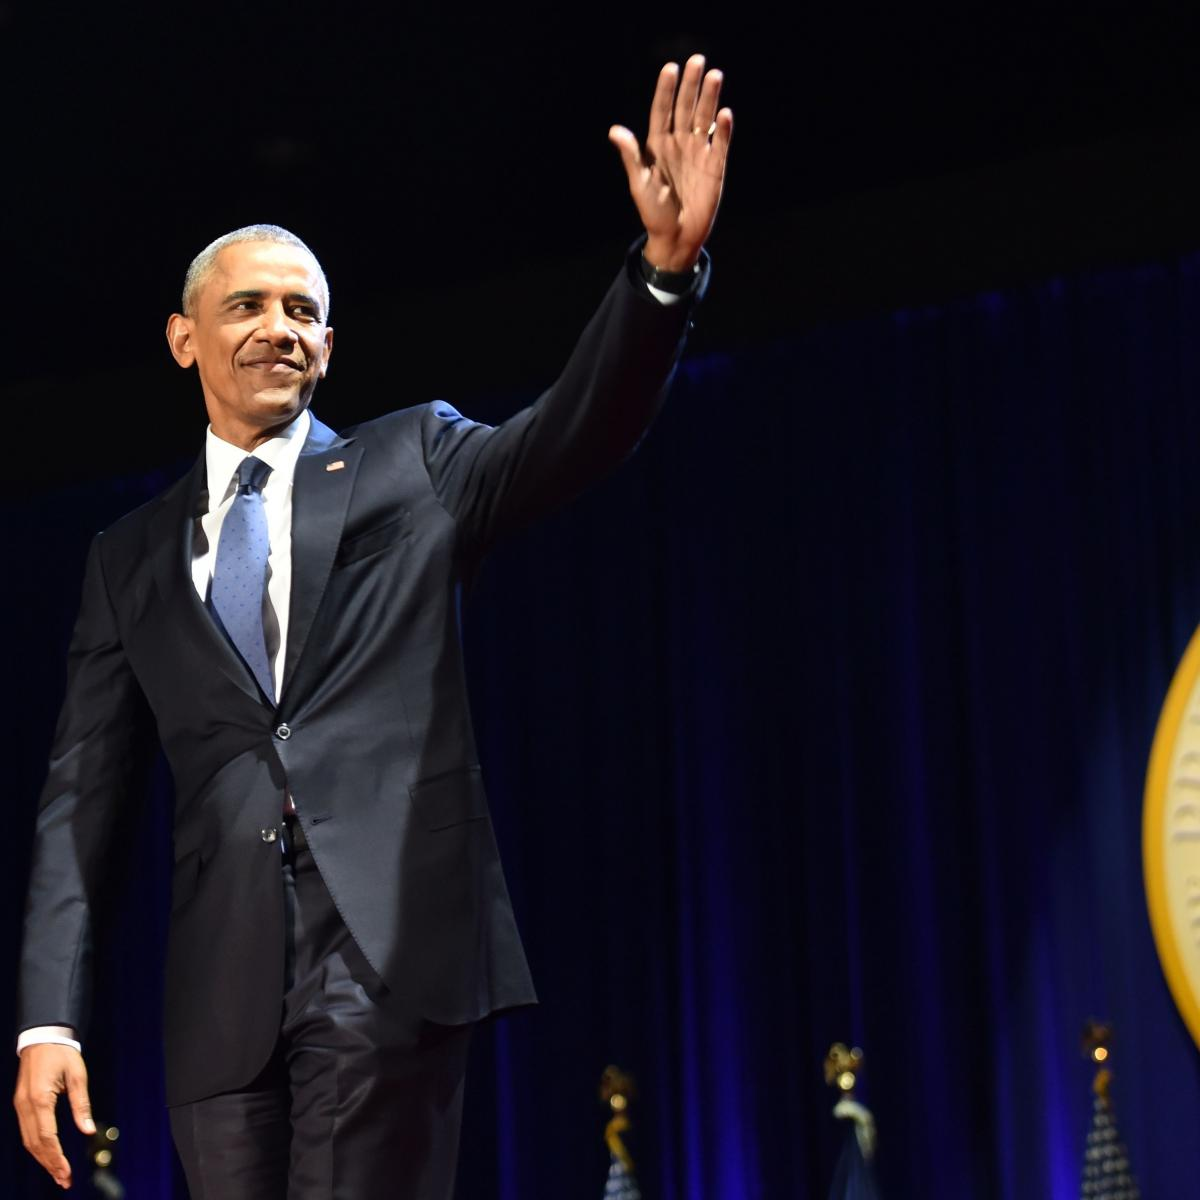 Athletes Honor President Barack Obama on Night of Farewell Address